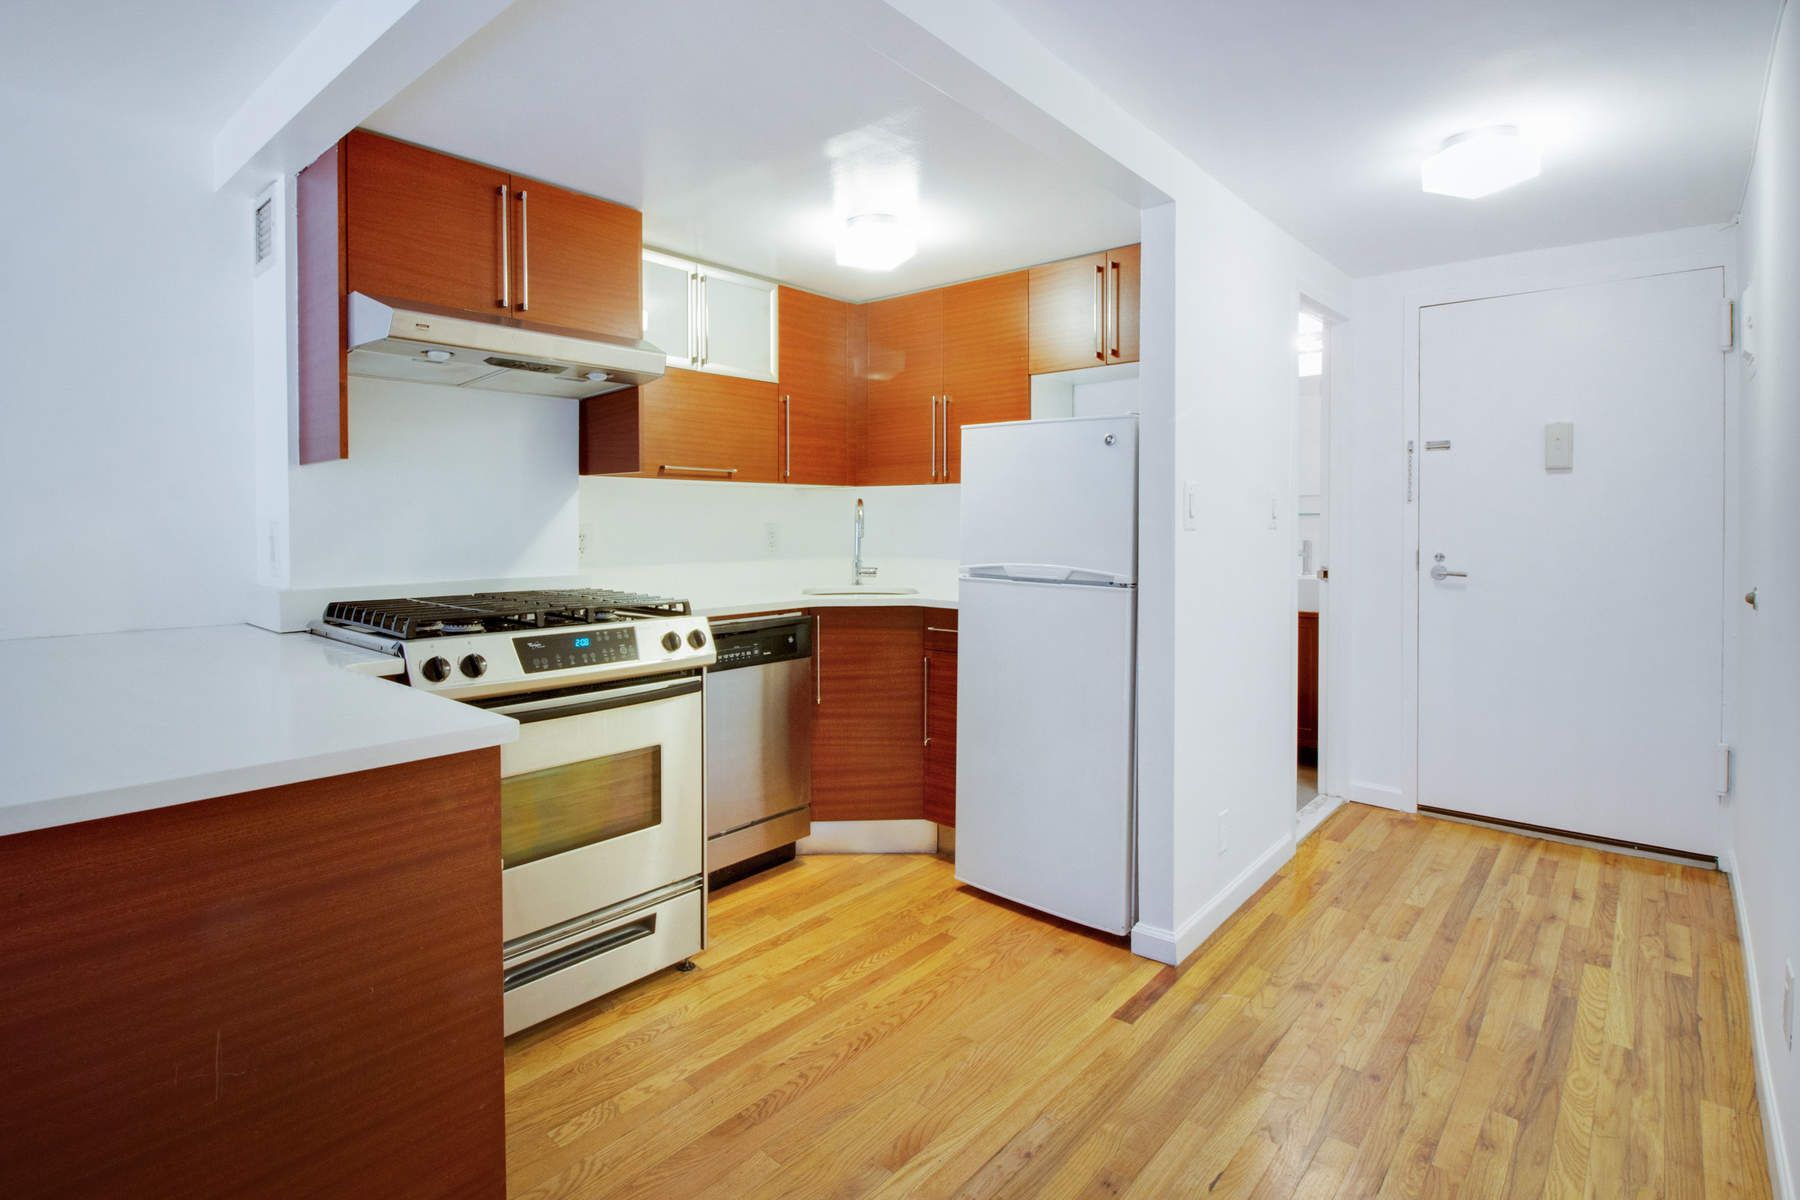 Additional photo for property listing at 184 Thompson Street, Apt. 2D 184 Thompson Street Apt 2D New York, New York 10012 United States